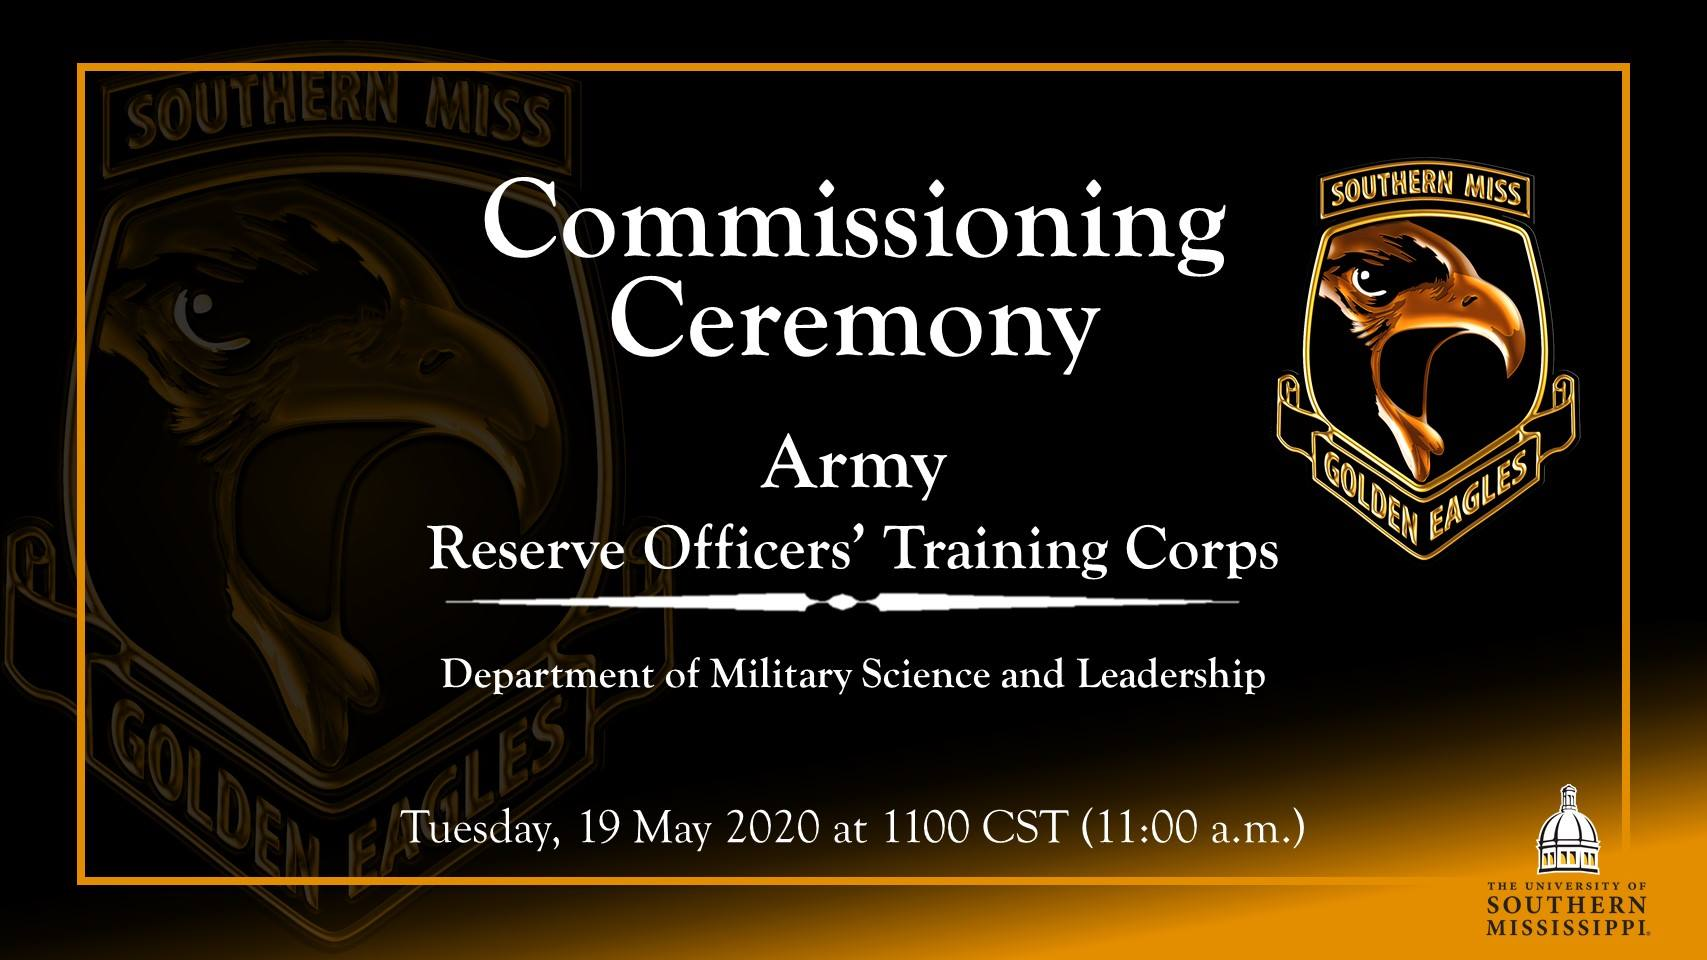 Commissioning Ceremony - Army Reserve Officer's Training Corps - Tuesday May 19 11:00 CST